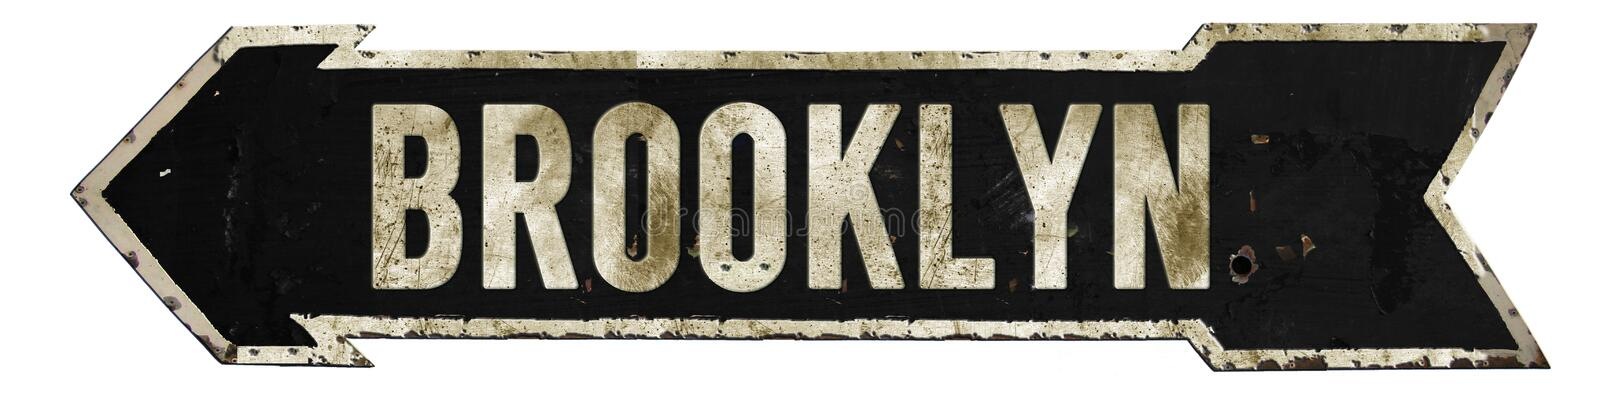 Brooklyn Street Sign Grunge Arrow stock images